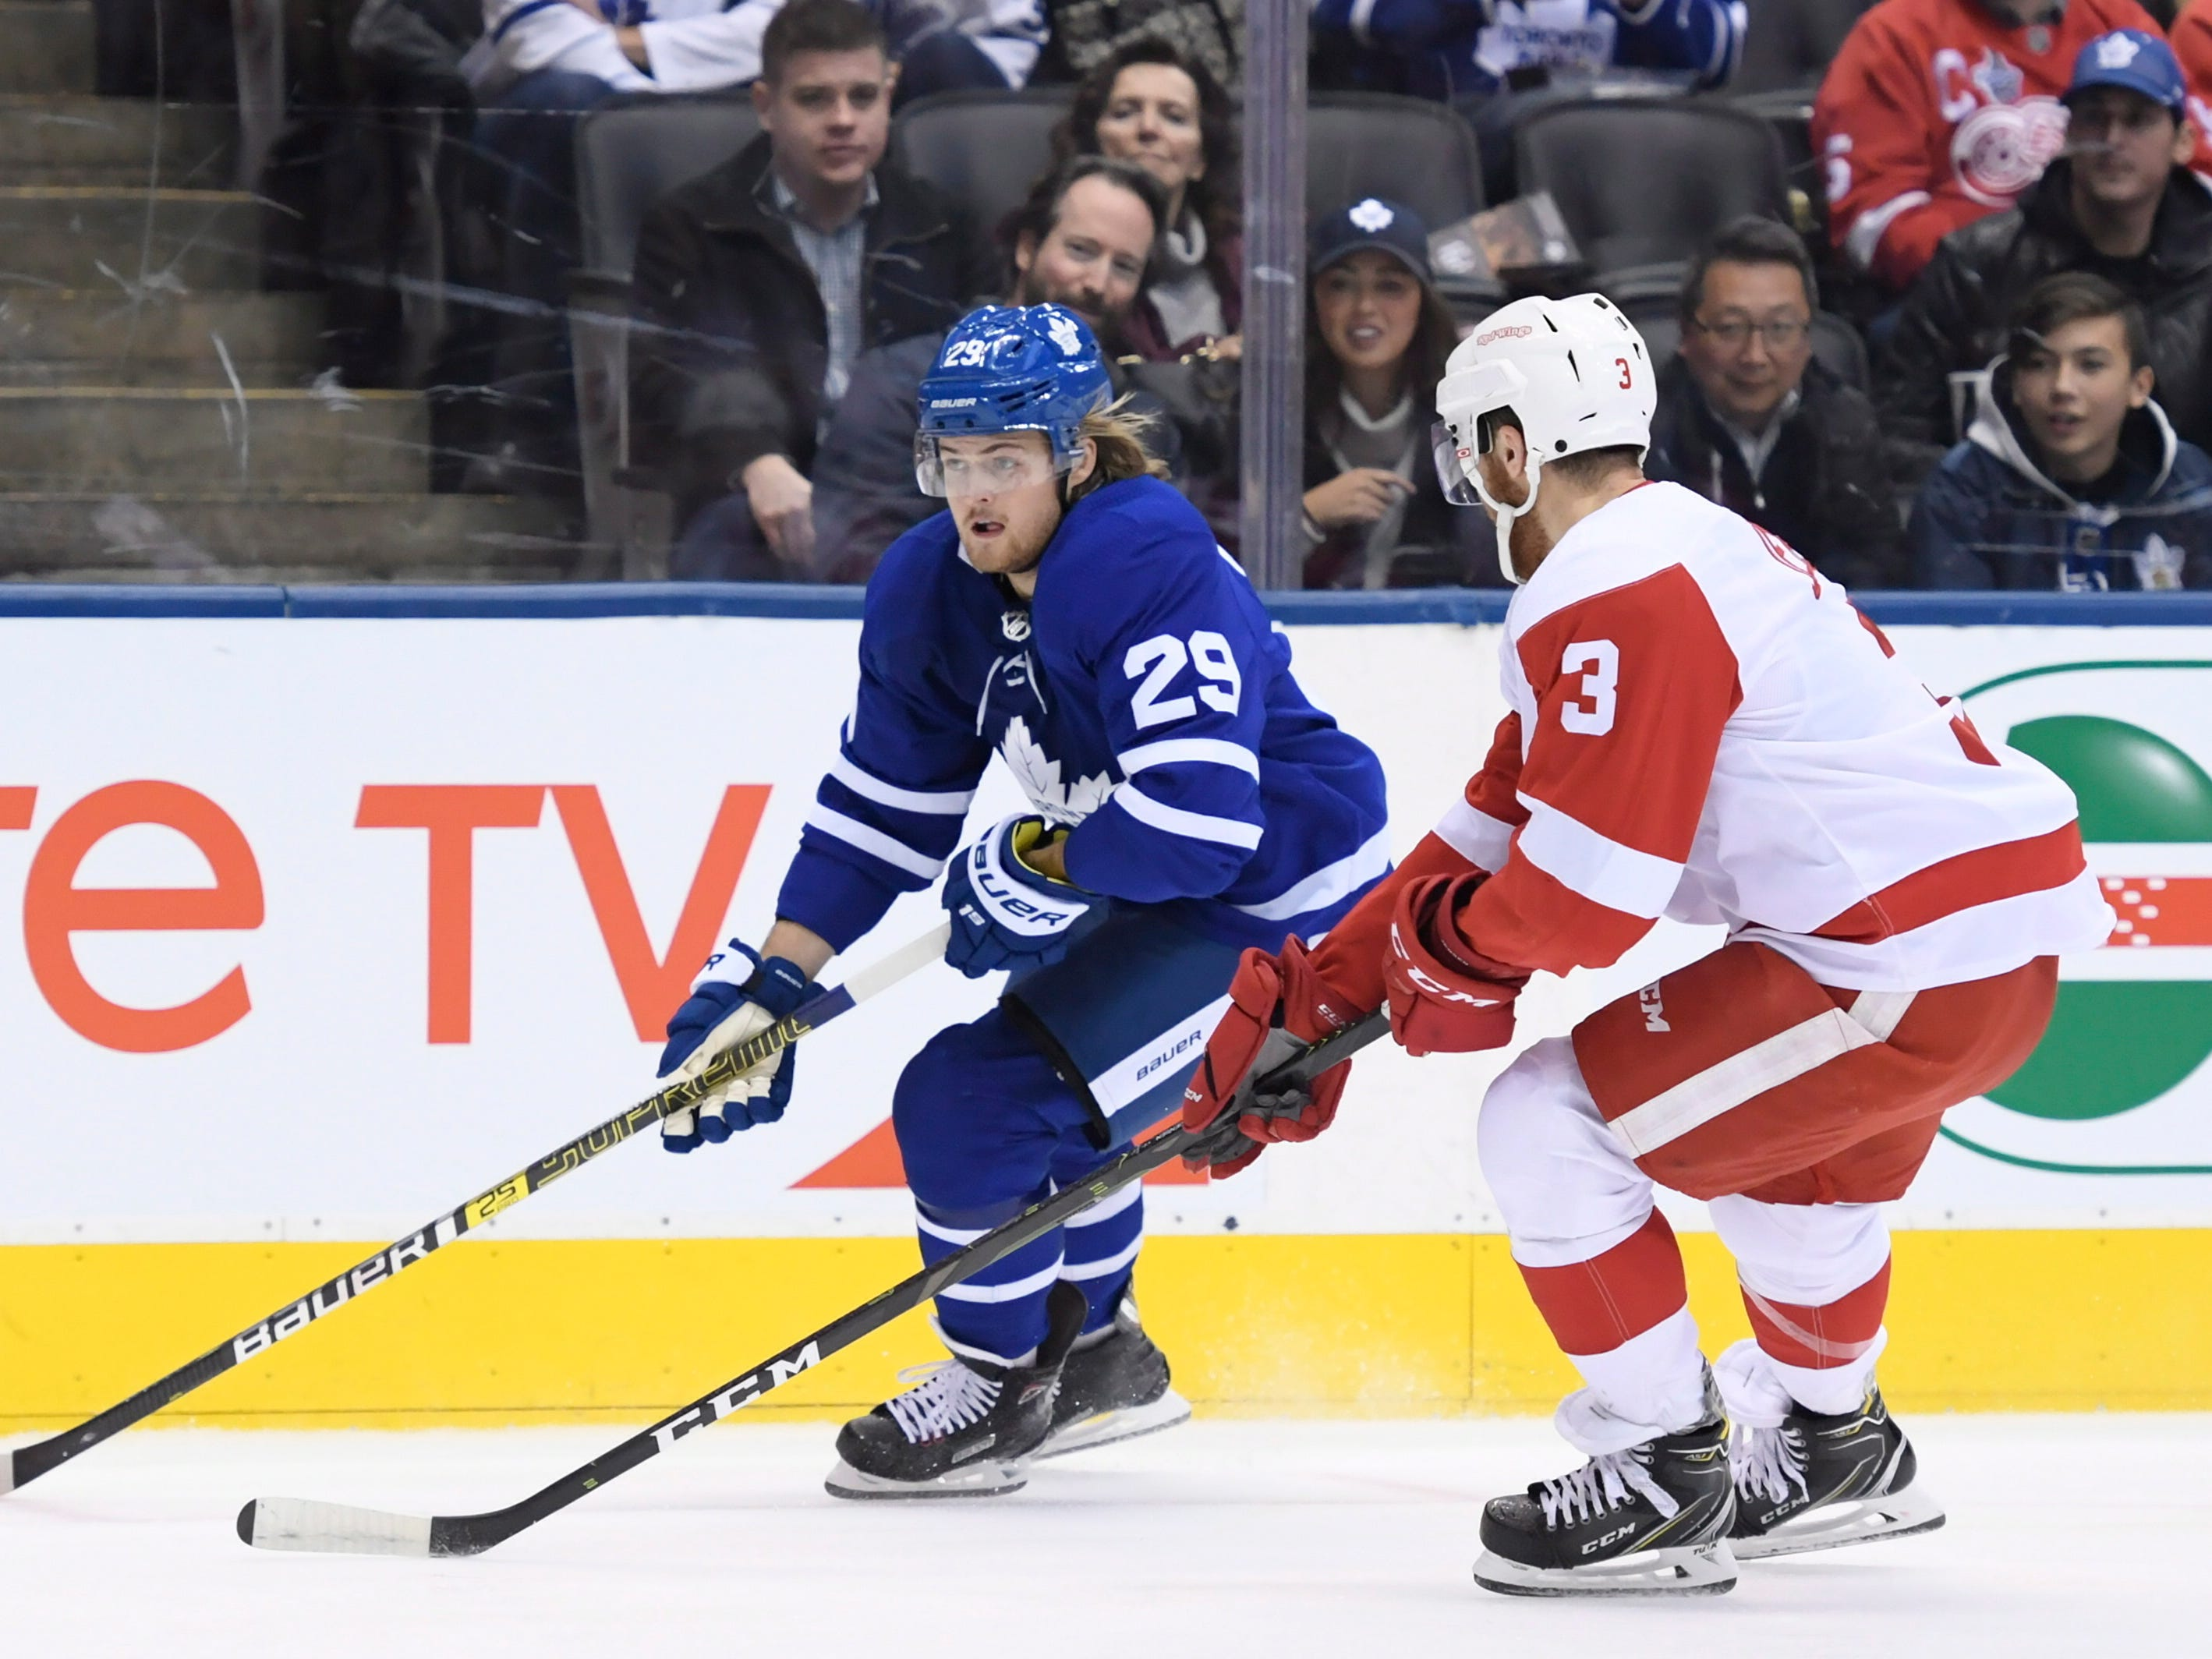 Toronto's William Nylander moves past Detroit defenseman Nick Jensen during the first period.